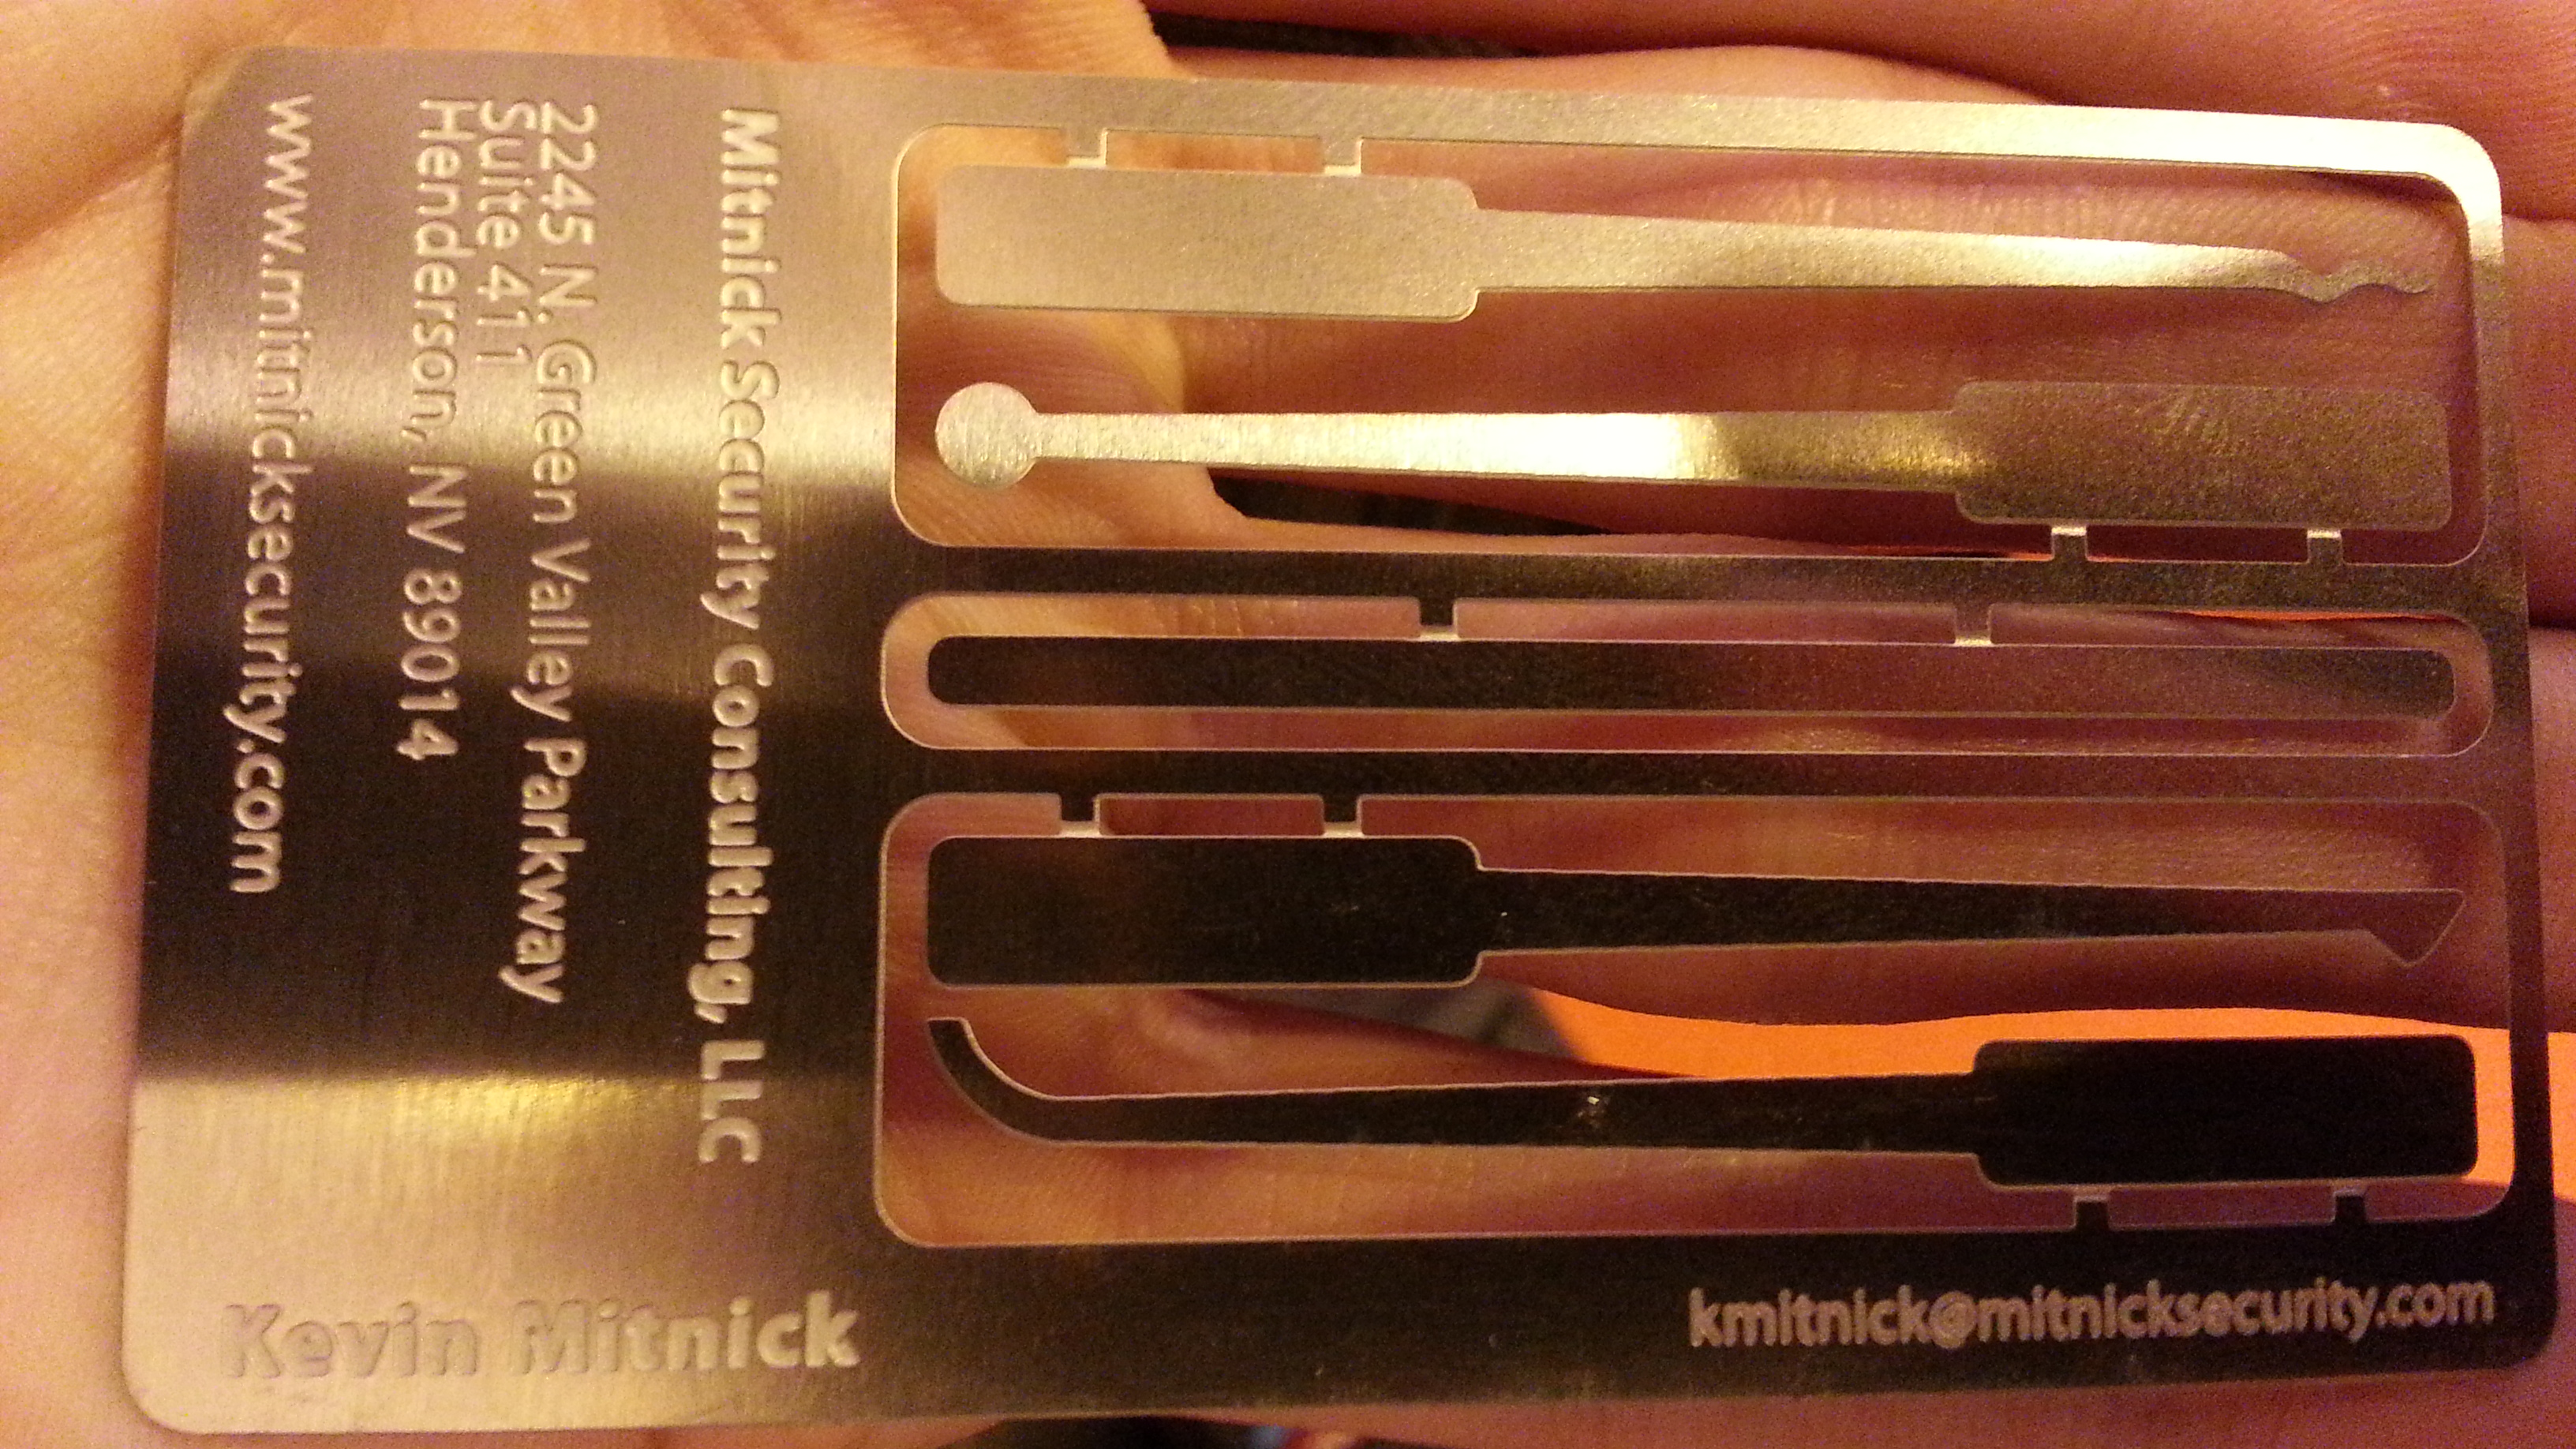 Kevin Mitnick metal business card IP EXPO 2013 London